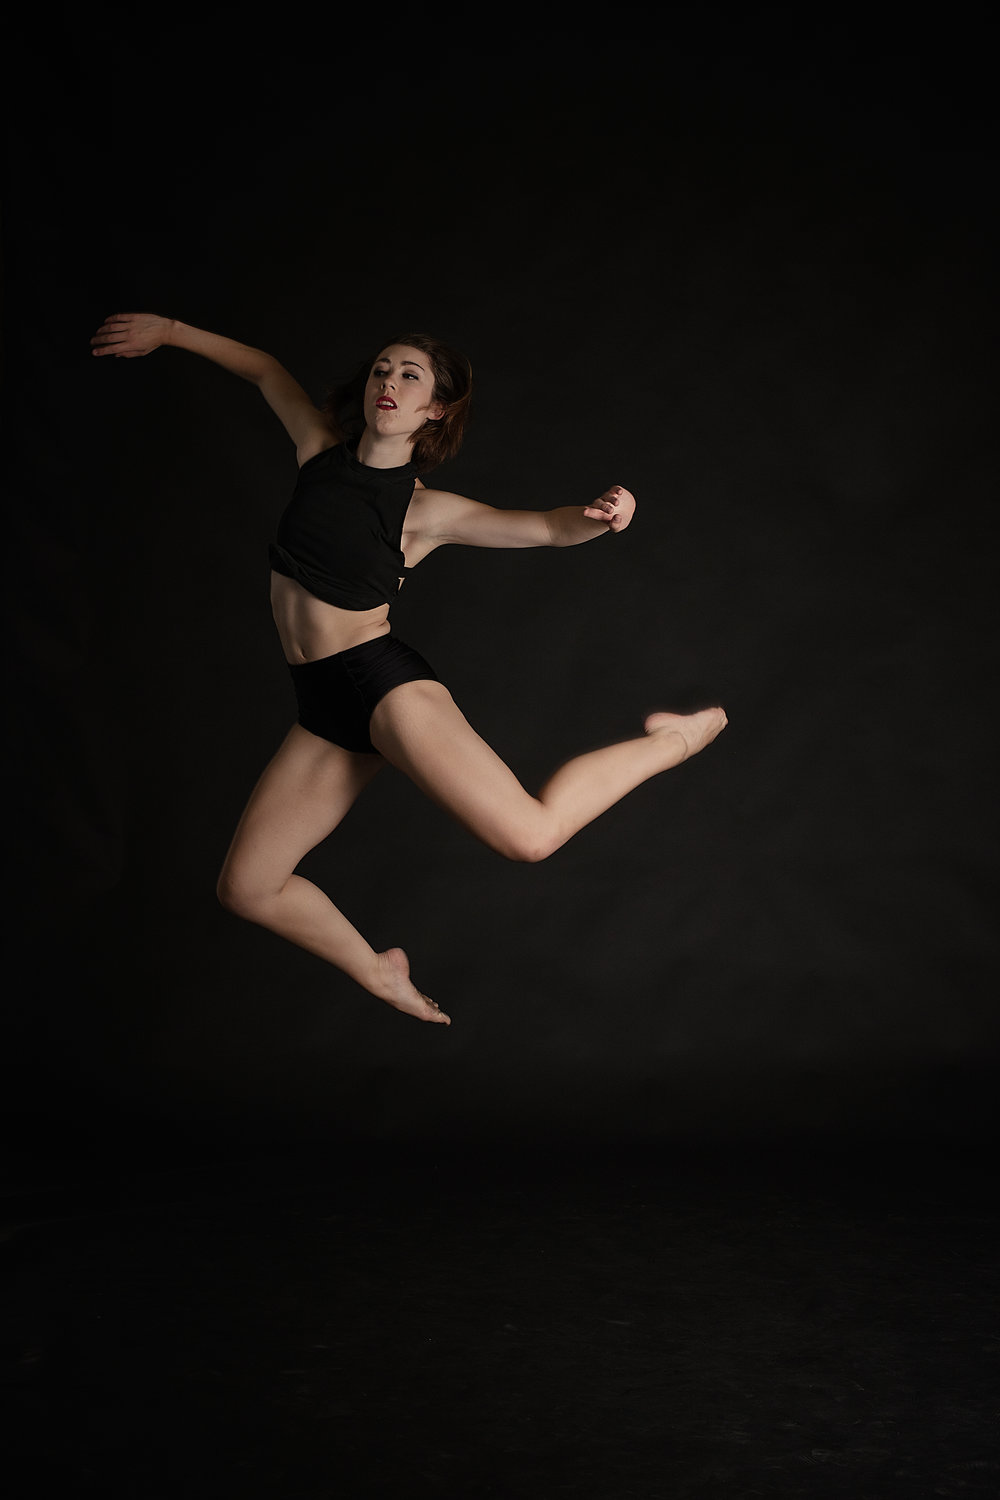 Belle Jessen Contemporary Dancer | Nomee Photography | Chicago Photographer favorite 2017